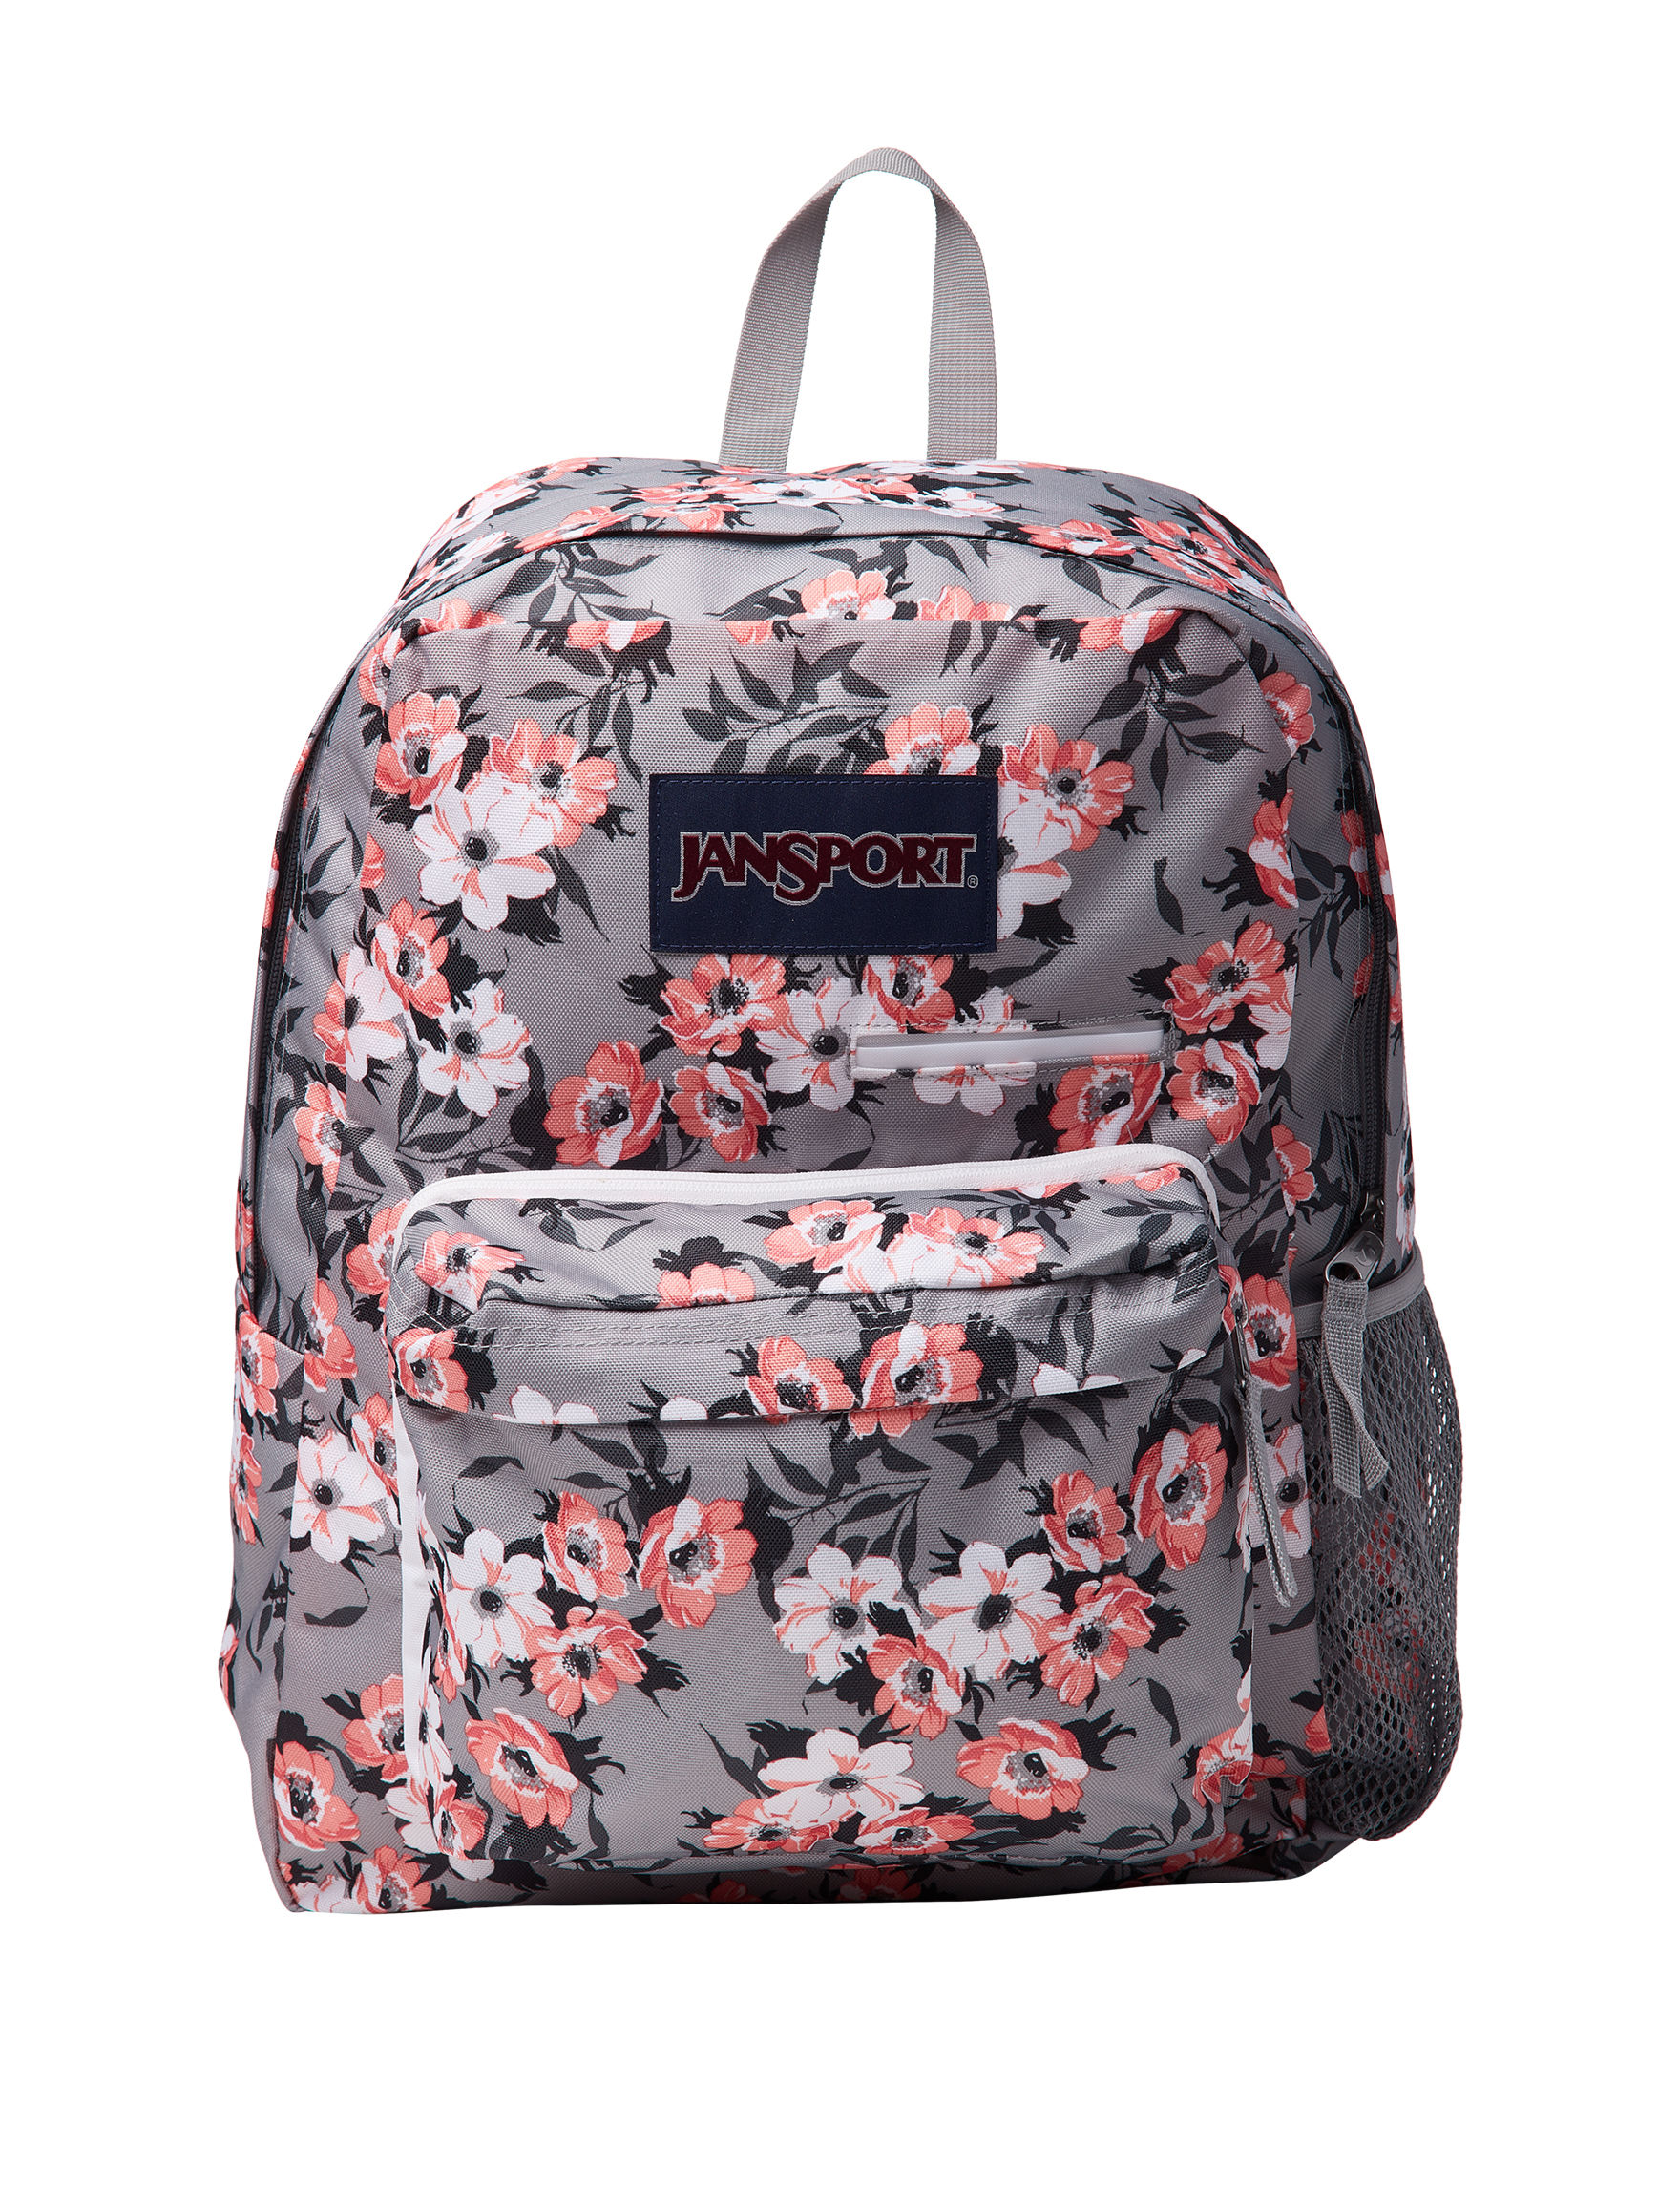 Jansport Grey Multi Bookbags & Backpacks